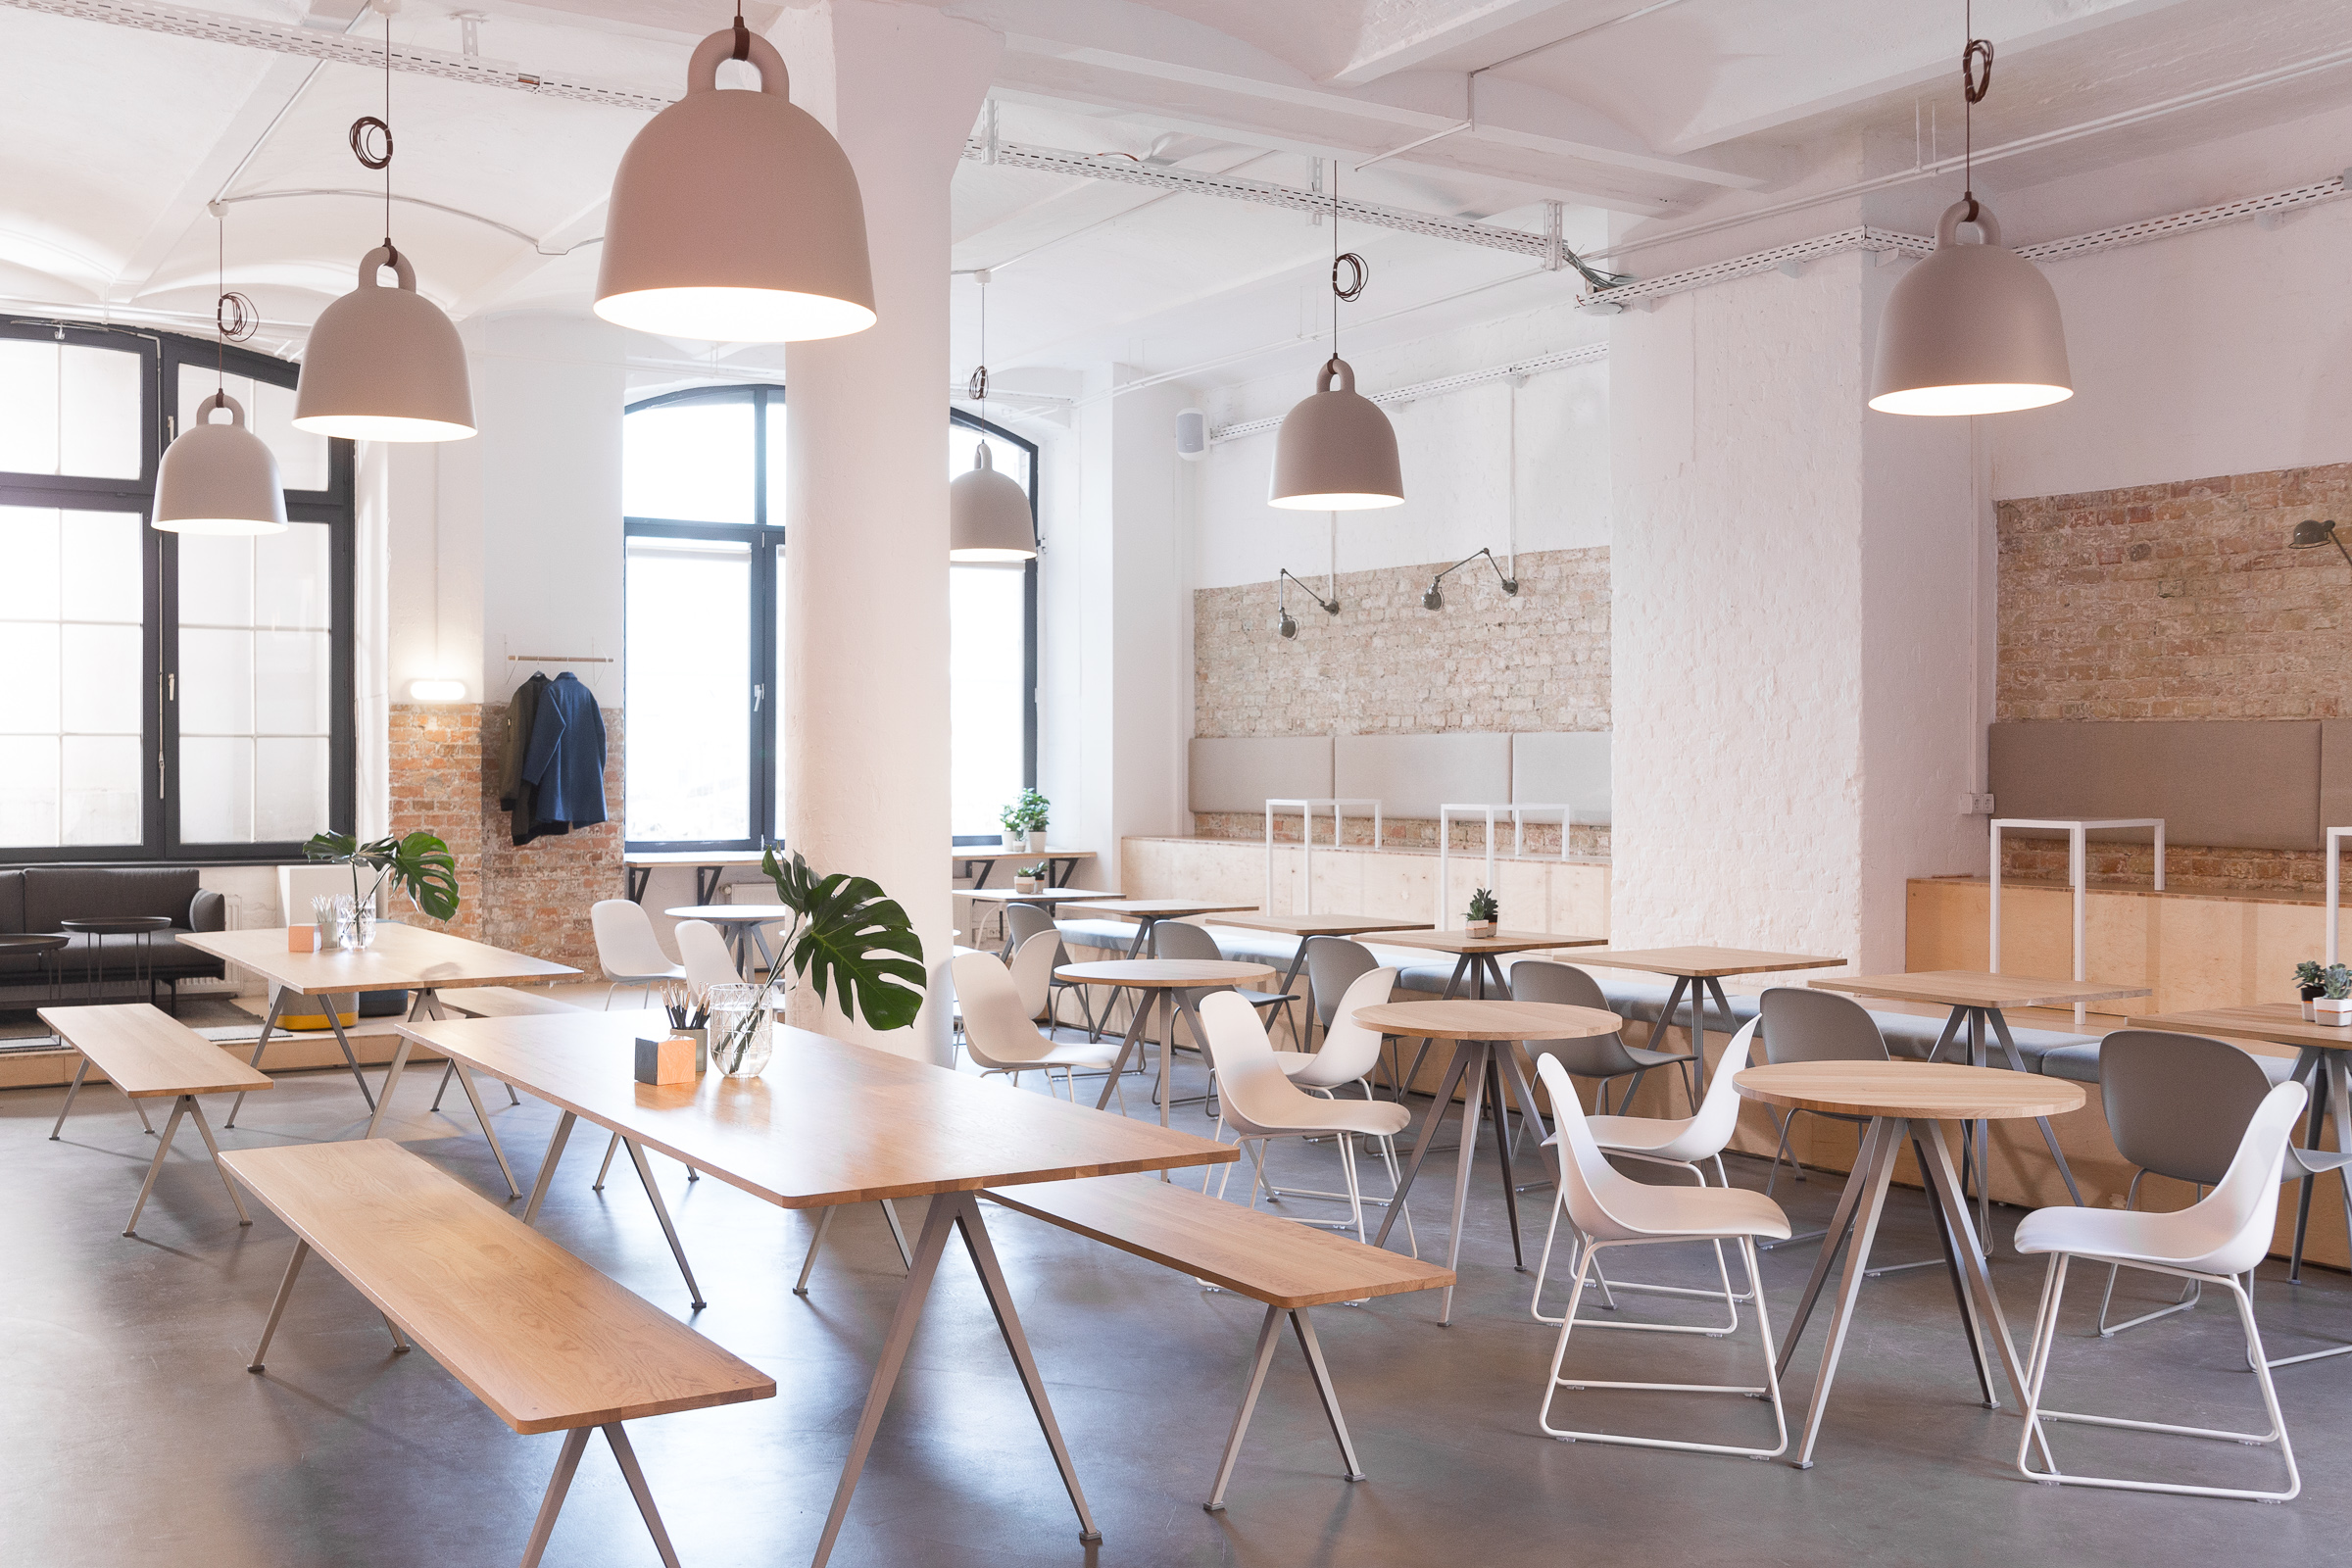 Contentful's New Cafe - Also used for informal meetings and group presentations.